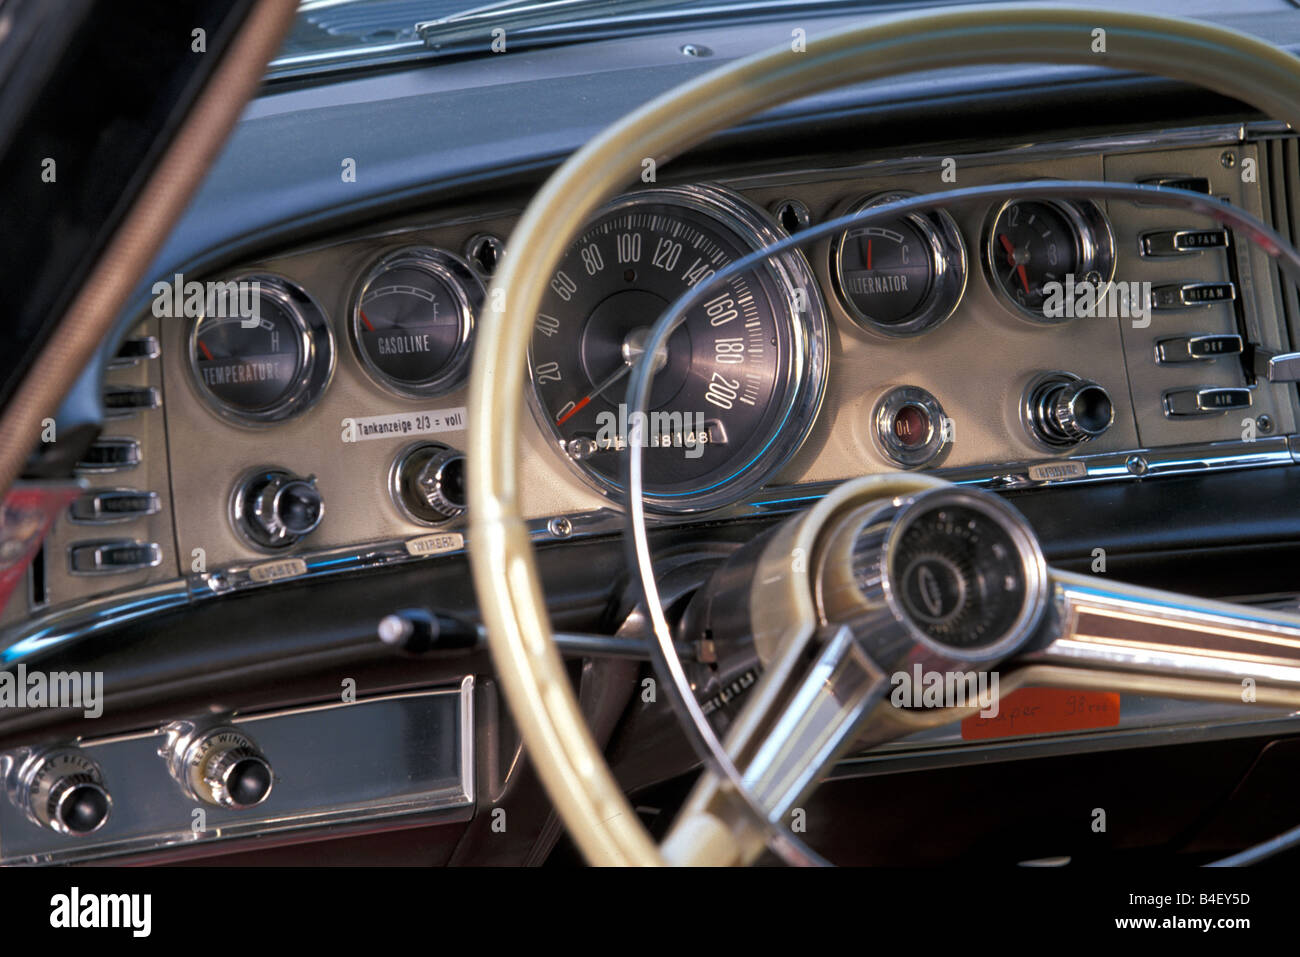 car chrysler 300 vintage car sedan black 1960s sixties model stock photo royalty free. Black Bedroom Furniture Sets. Home Design Ideas